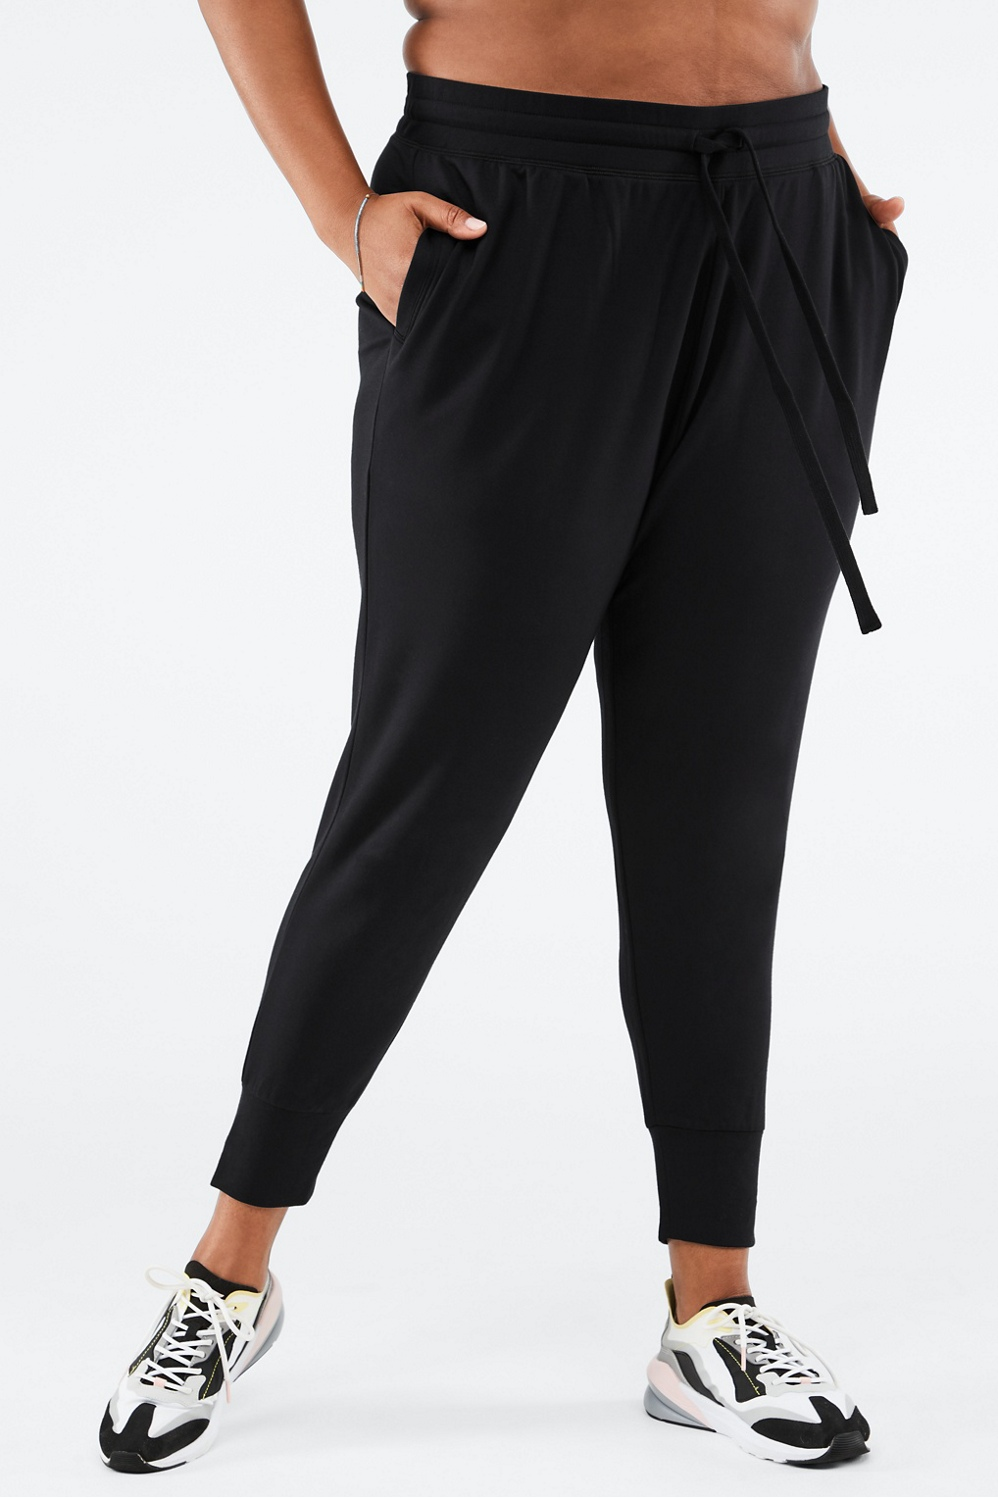 When you\\\'re in the mood to just kick back, snuggle up to this pair of joggers made from our insanely soft tech terry fabric. Tapered ankles and a drawstring waist give you a flattering shape.